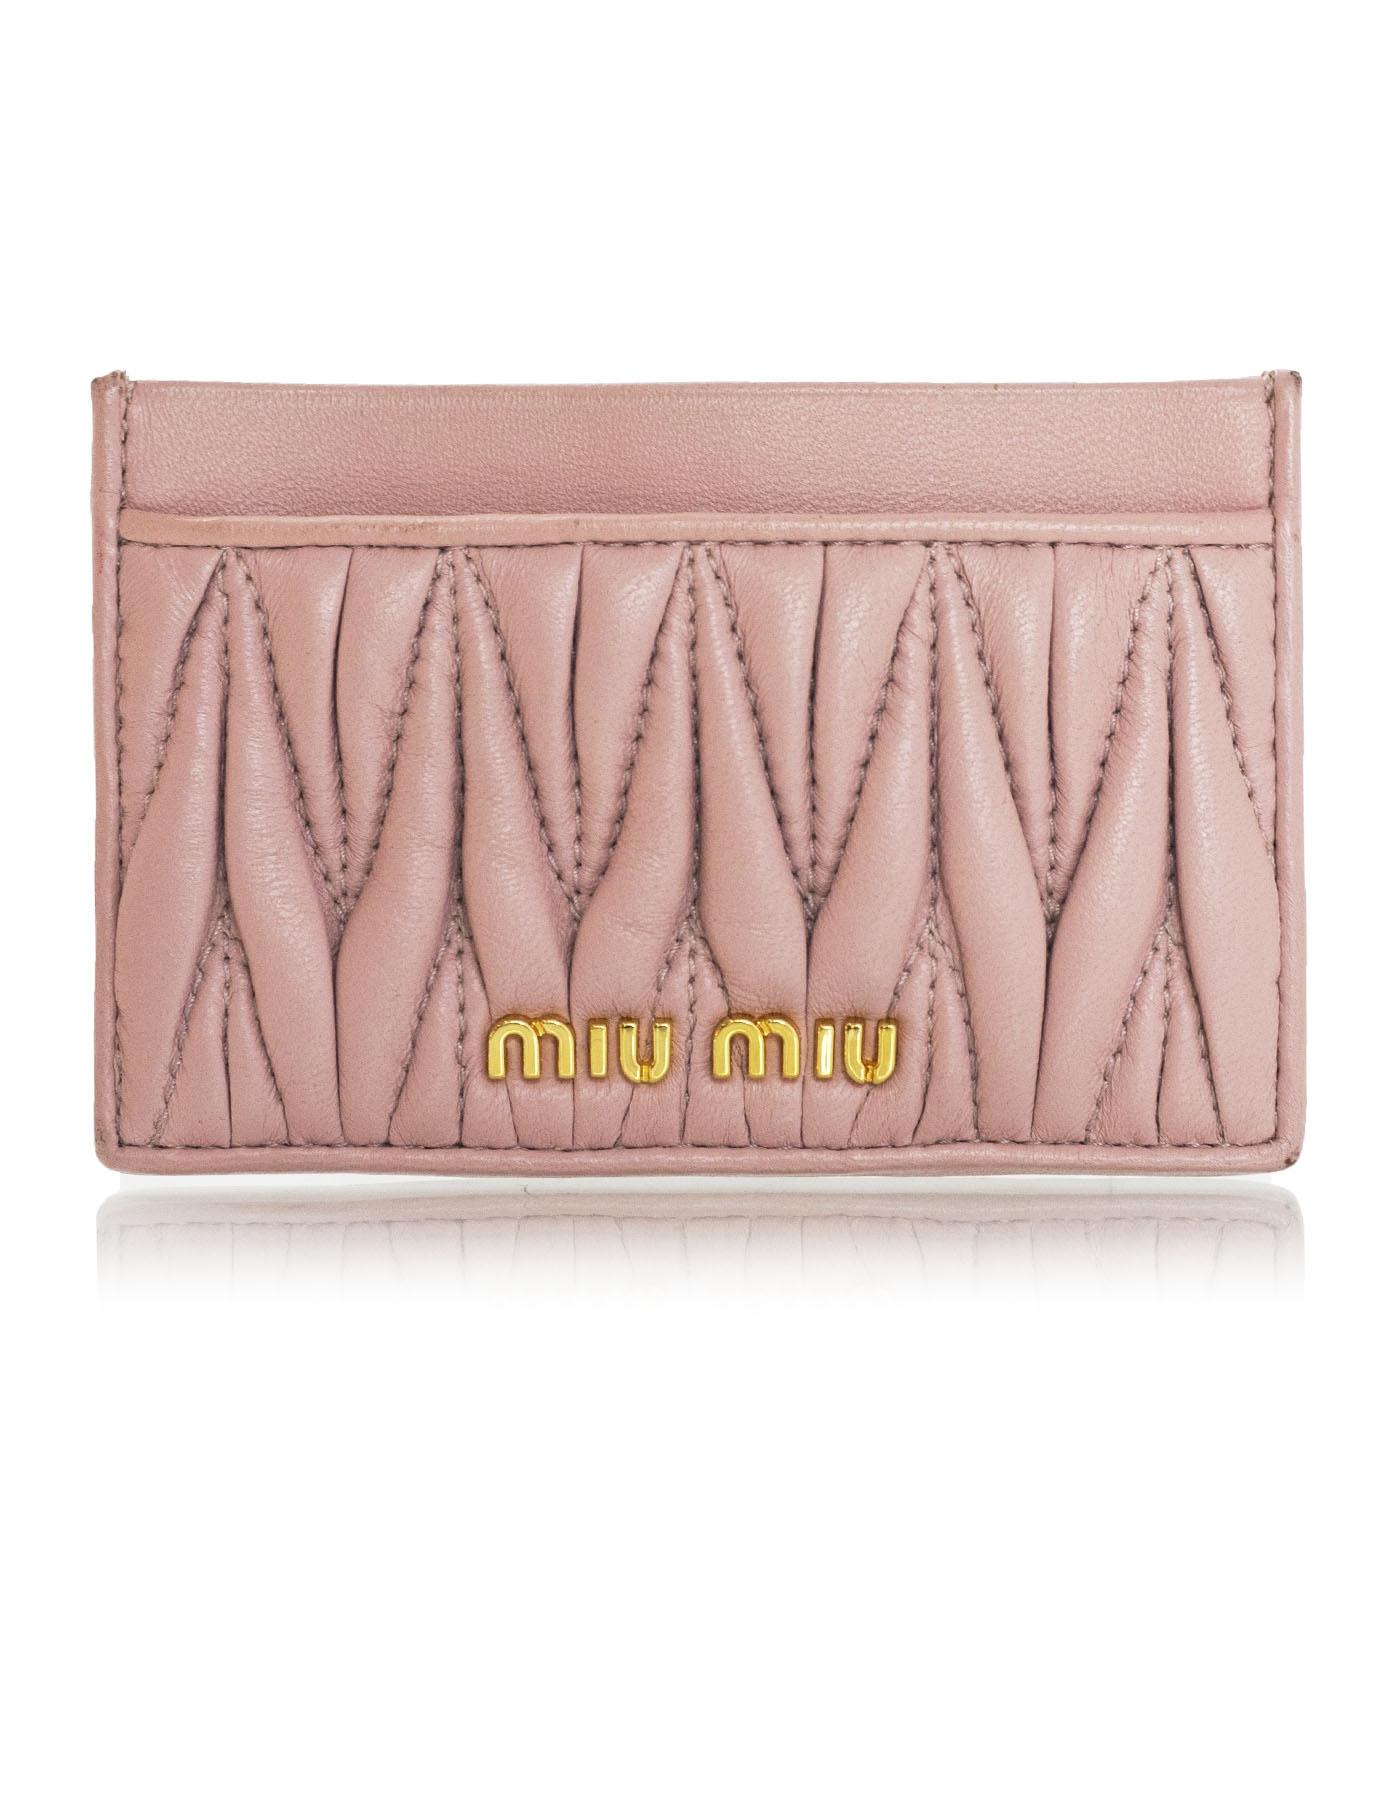 VIDA Leather Statement Clutch - CALIDO COLLECTION/GRC by VIDA xNxQ43OBF